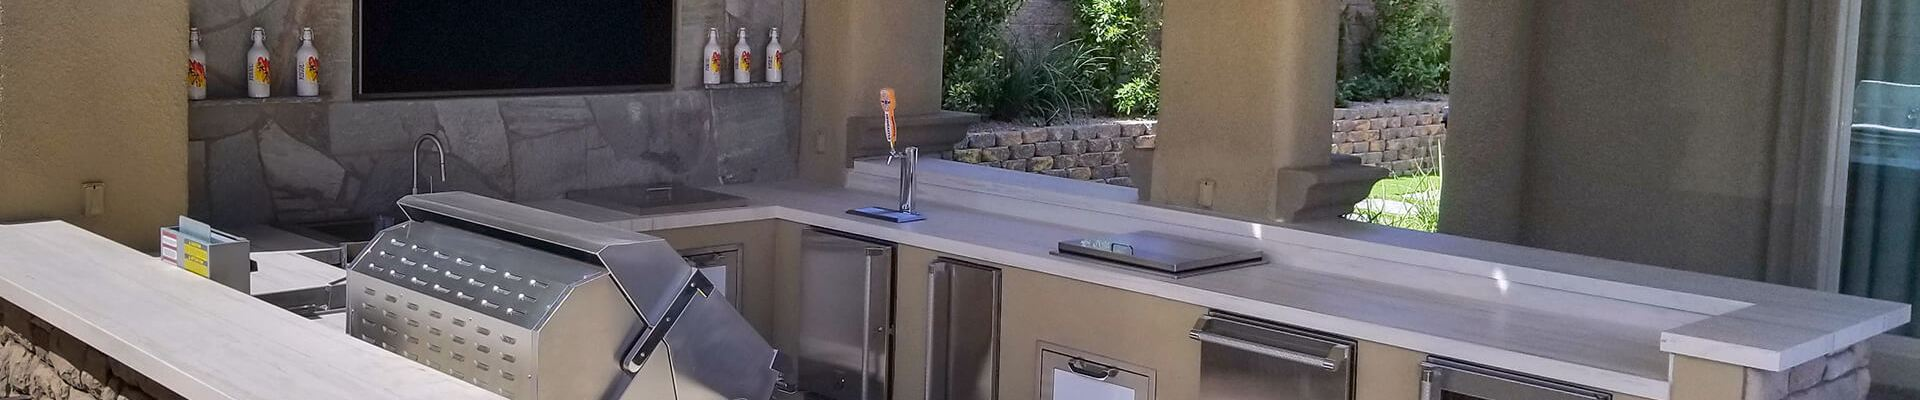 Custom Outdoor Kitchen Design and Contracting Services of Southern Nevada - Custom Outdoor Kitchen with Media Wall